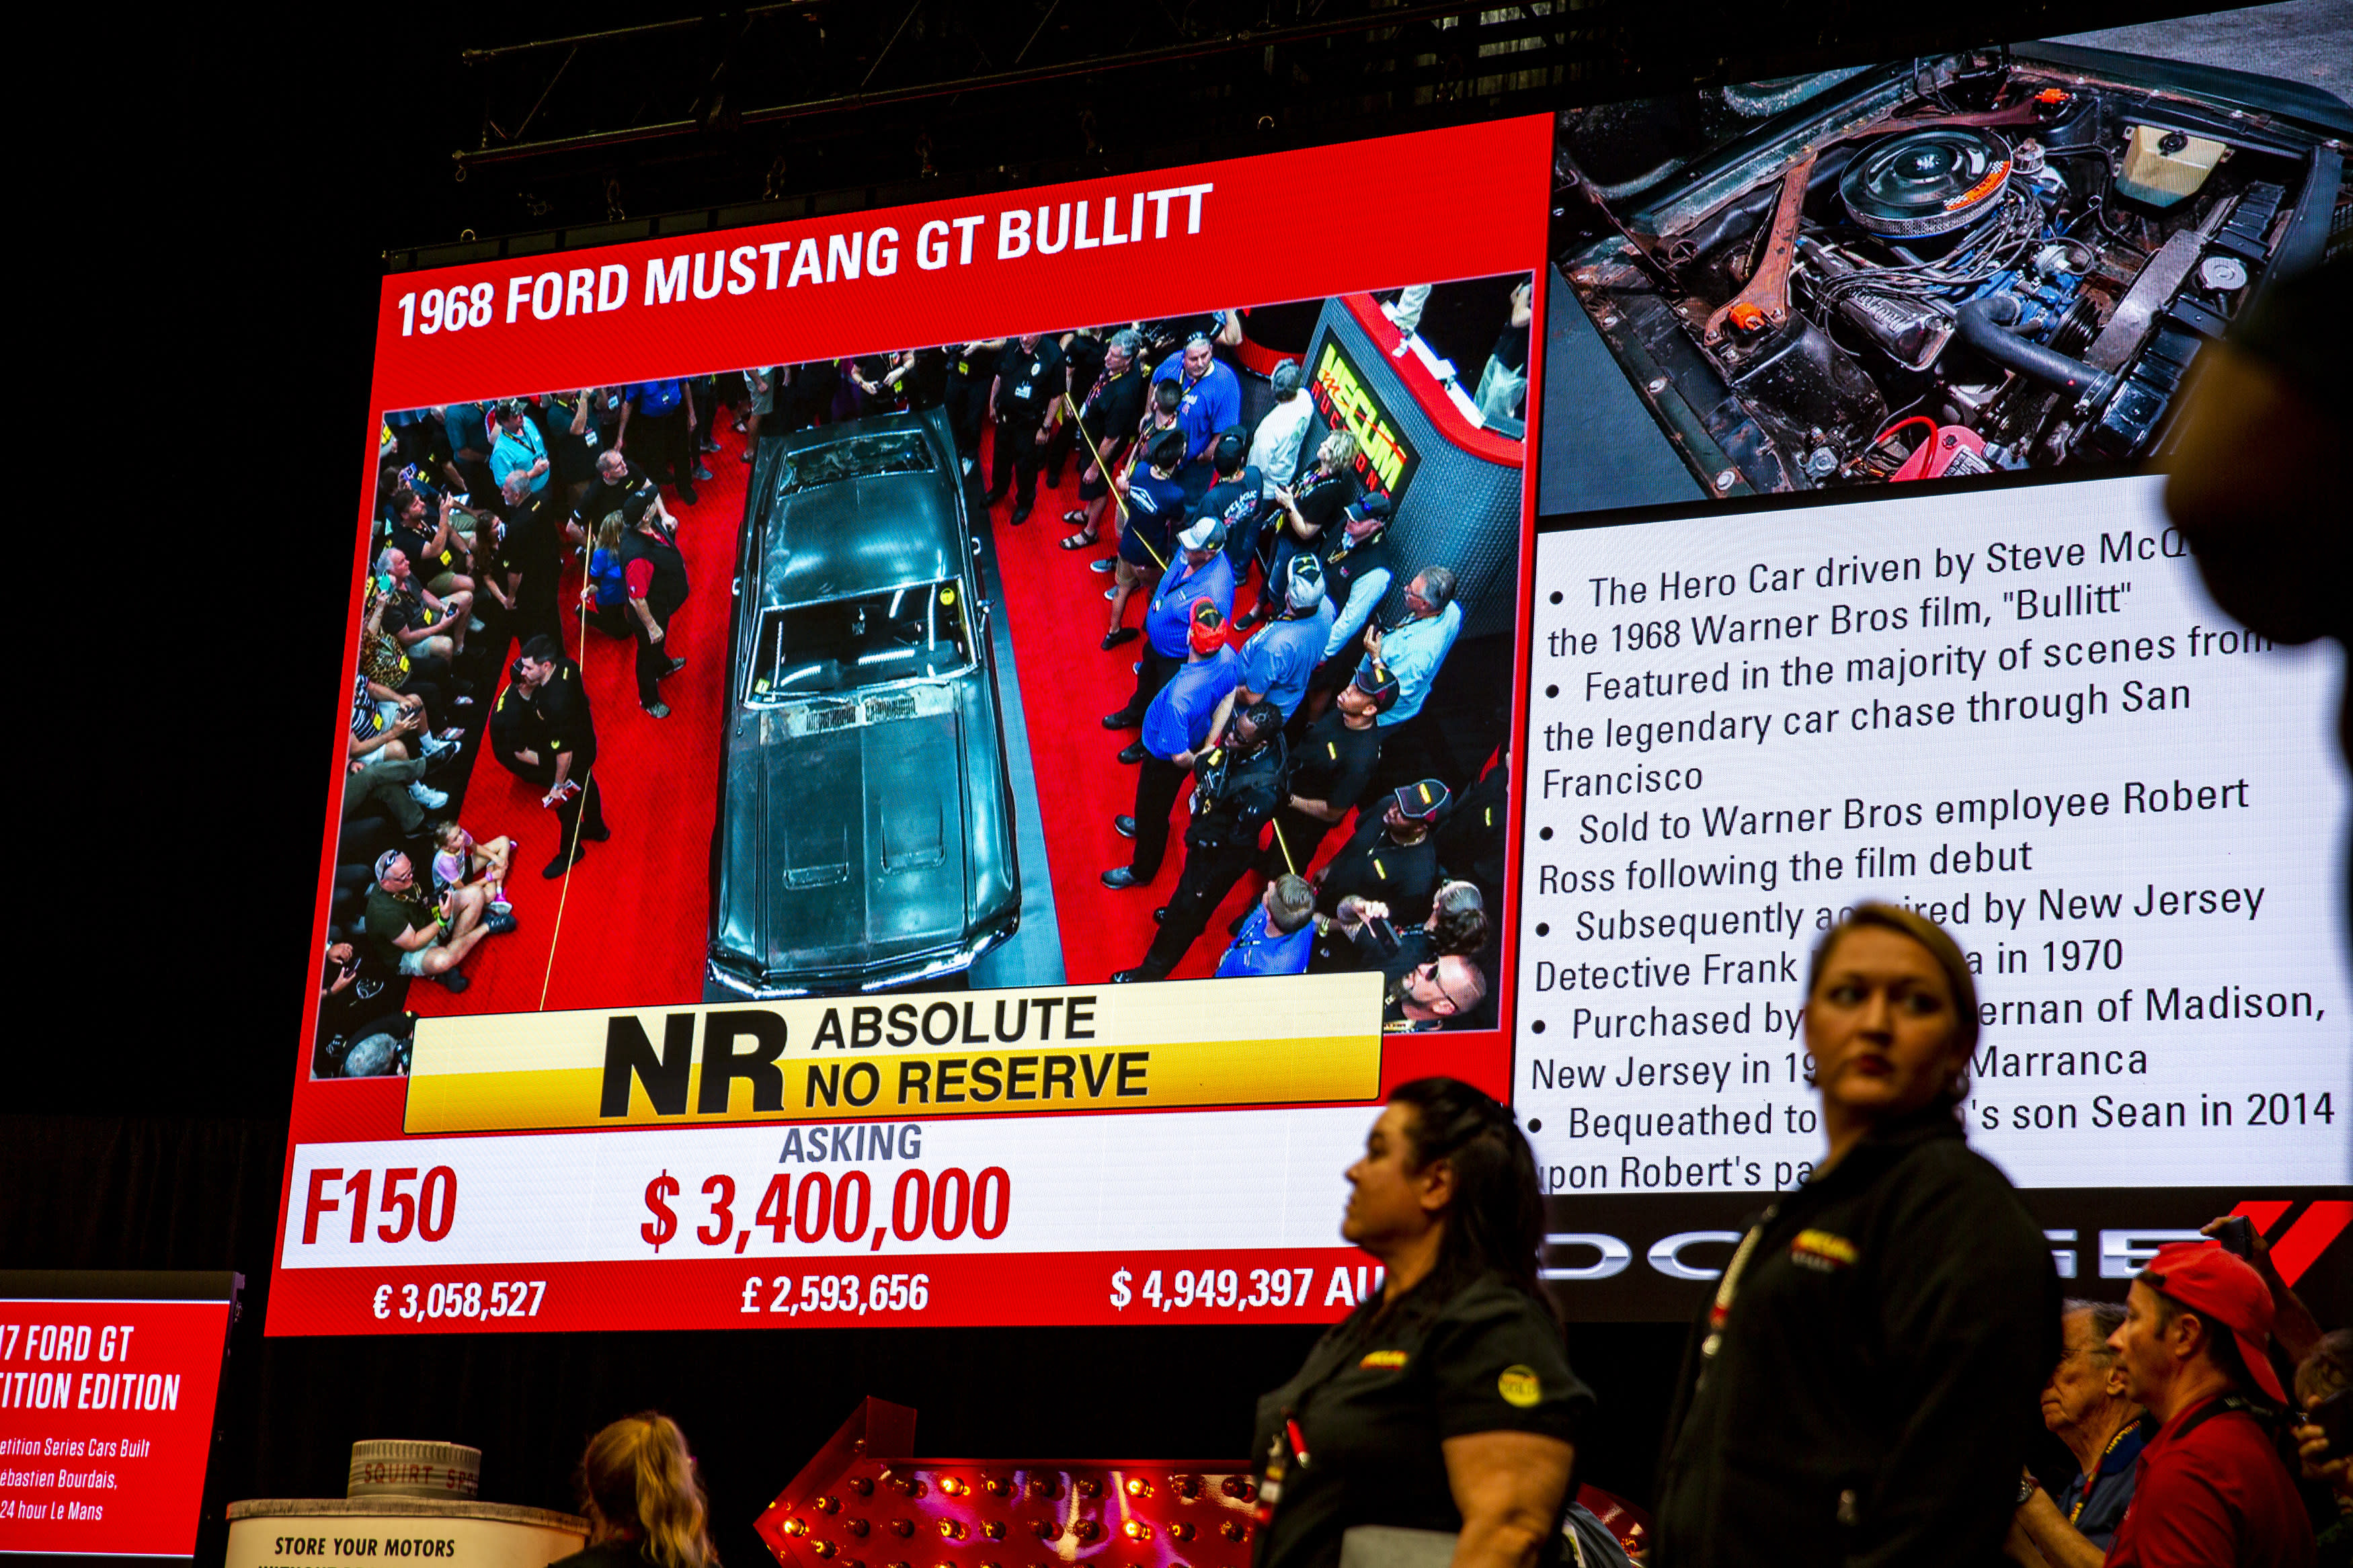 """This photo shows a sign describing the 1968 Ford Mustang """"Bullitt,"""" car during the Mecum Kissimmee auction, Friday, Jan 10, 2020 in Kissimmee, Fla. The iconic Highland Green 1968 Mustang GT that once made history for its appearance in the film """"Bullitt"""" is now making history again. It fetched $3.74 million Friday at Mecum's Kissimmee auction, making it the most expensive Mustang ever sold. (Patrick Connolly/Orlando Sentinel via AP)"""